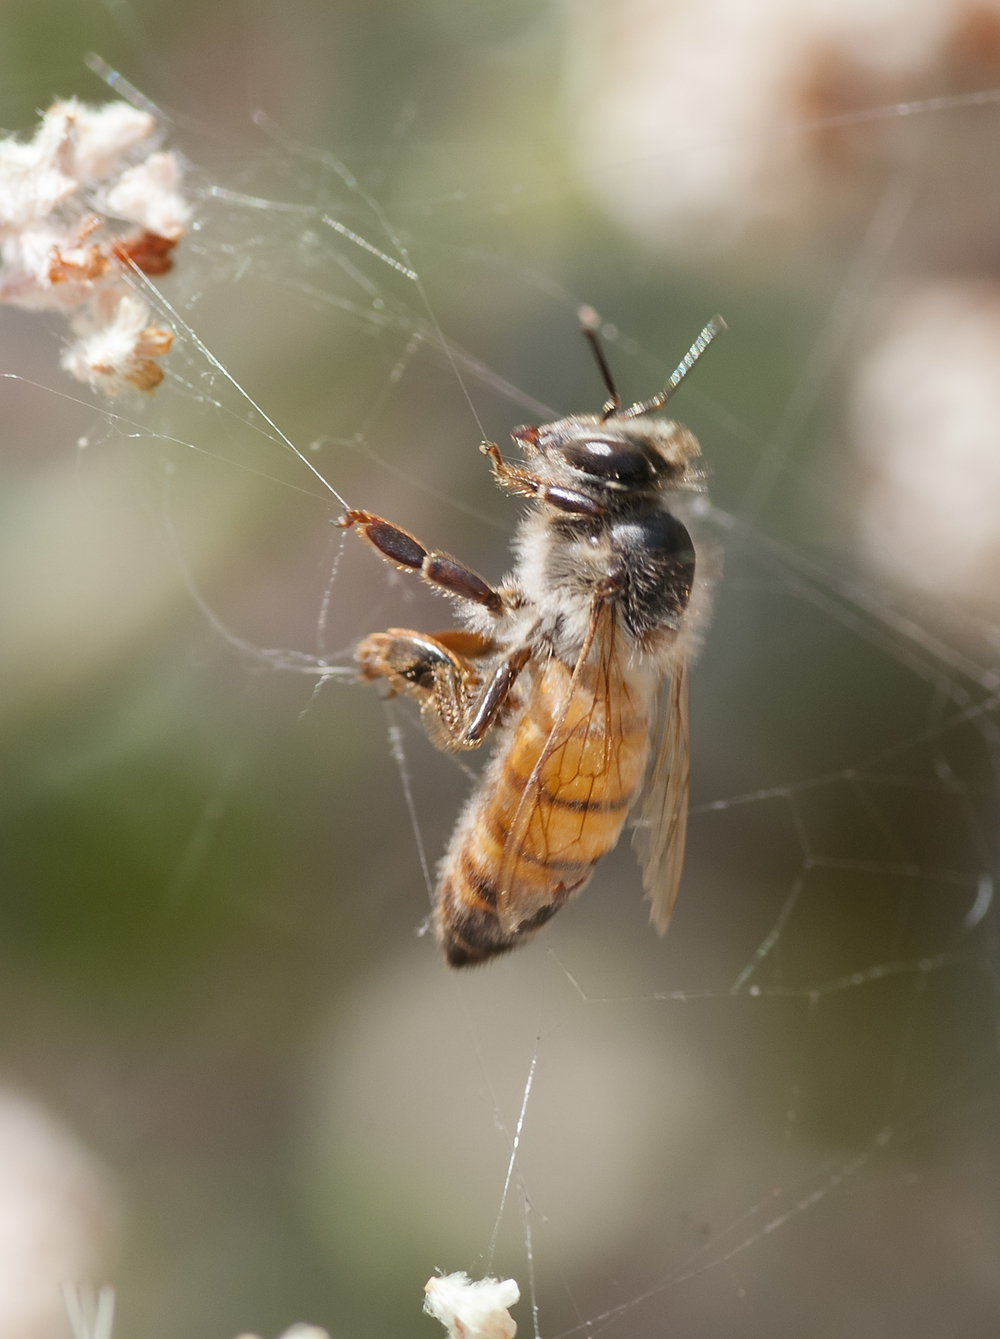 This aging female Honey Bee Apis mellifera struggles to free herself from a trash-spider's web.